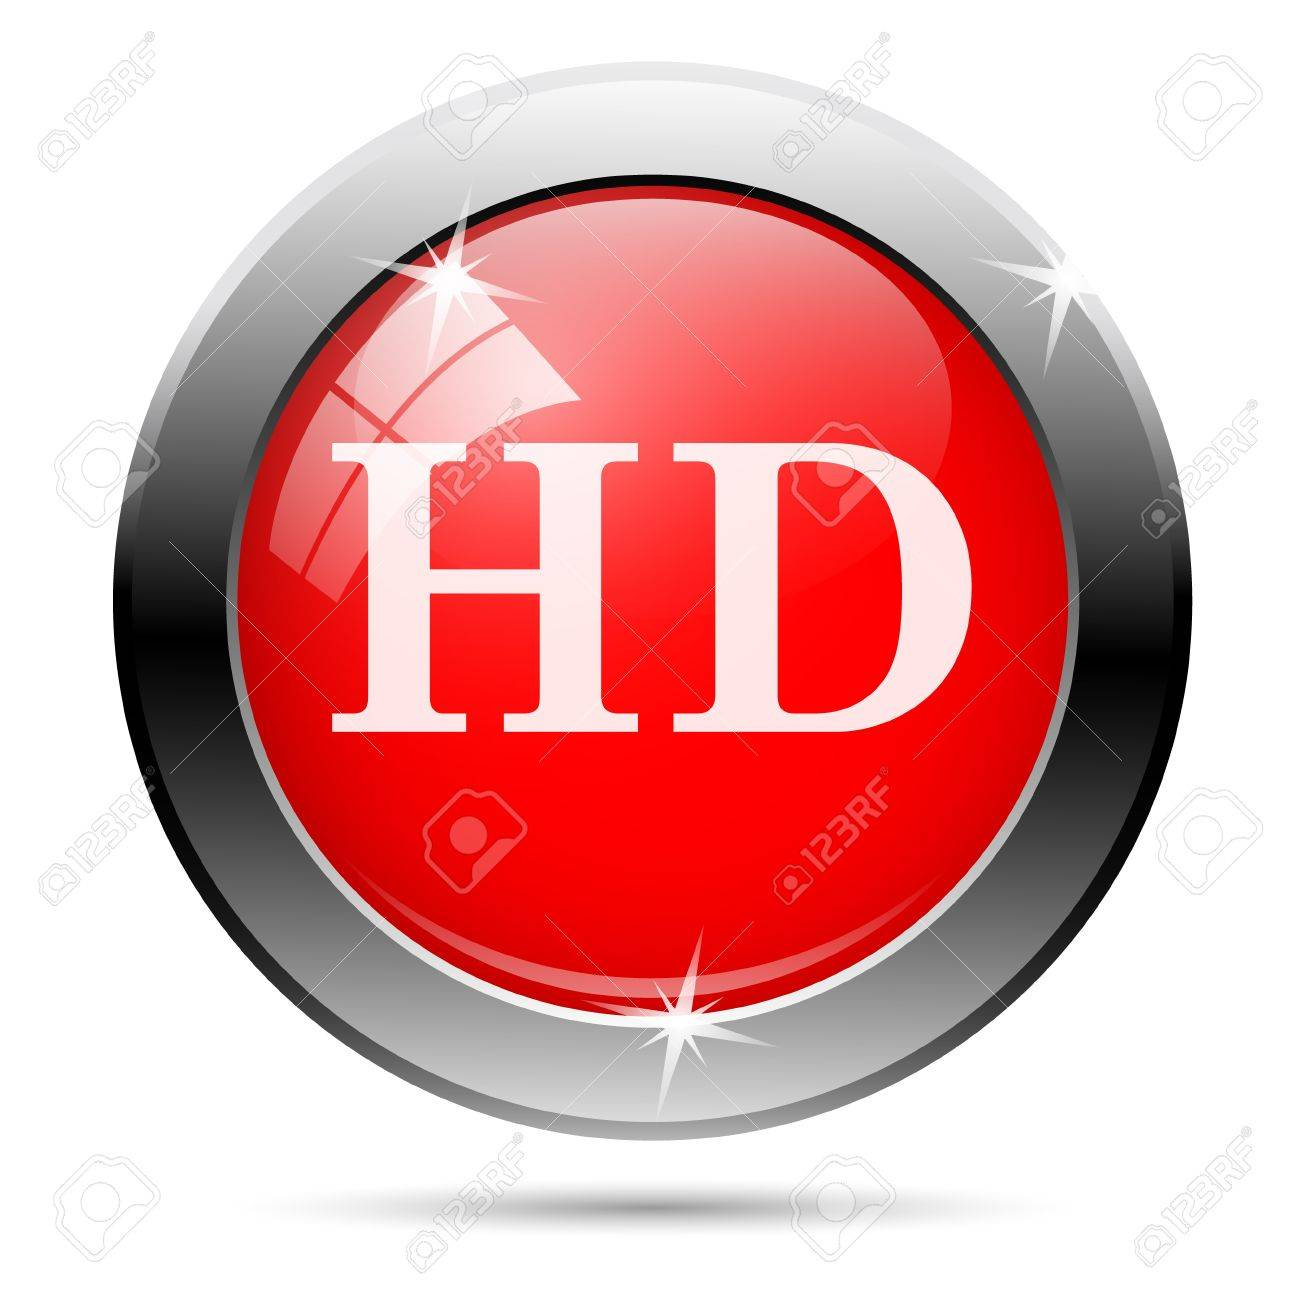 hd icon with white on red background Stock Photo - 19027249